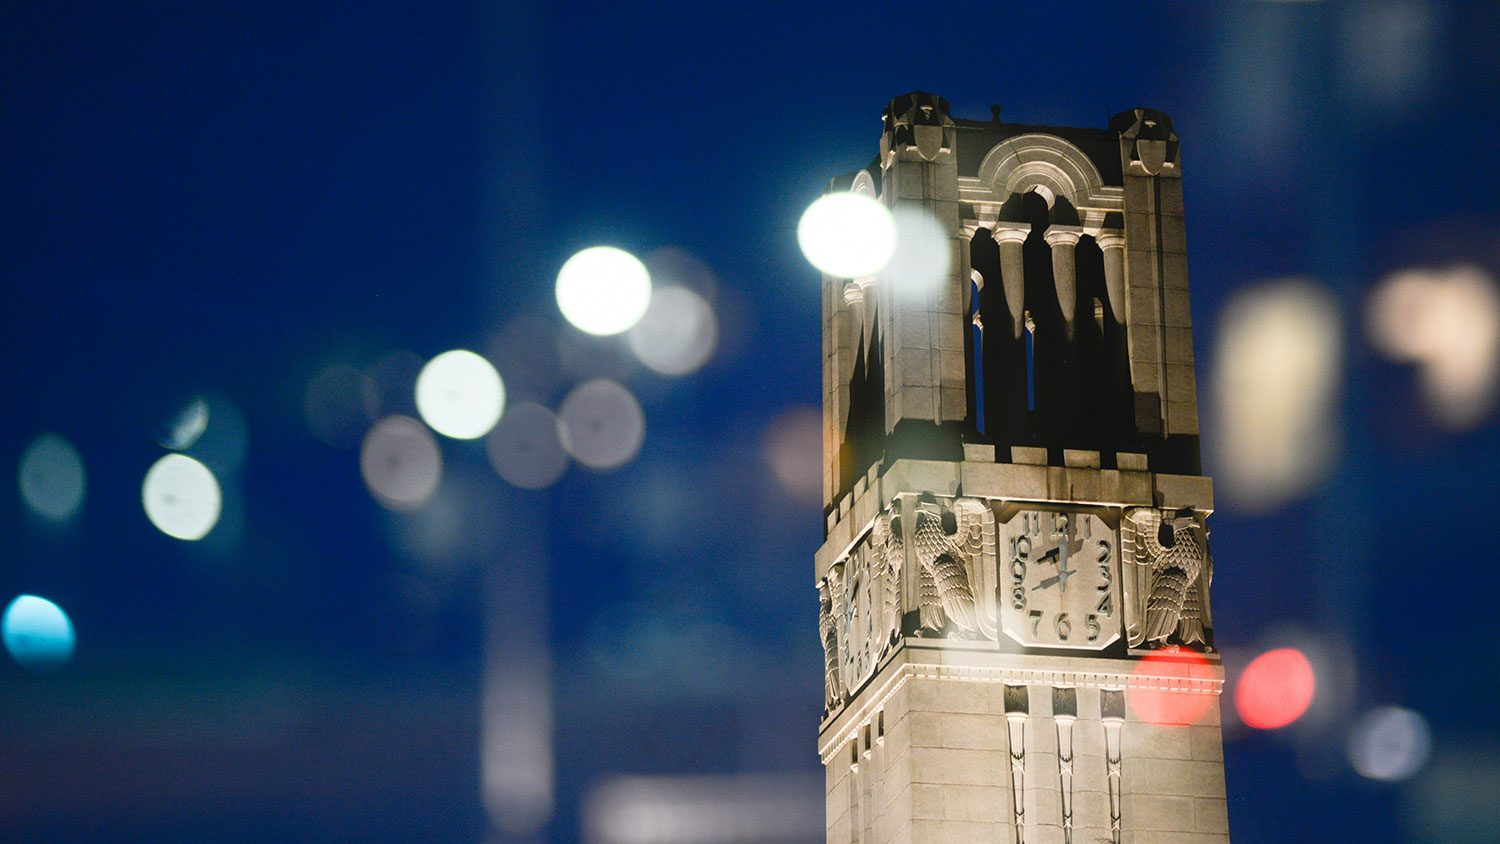 NC State belltower at night